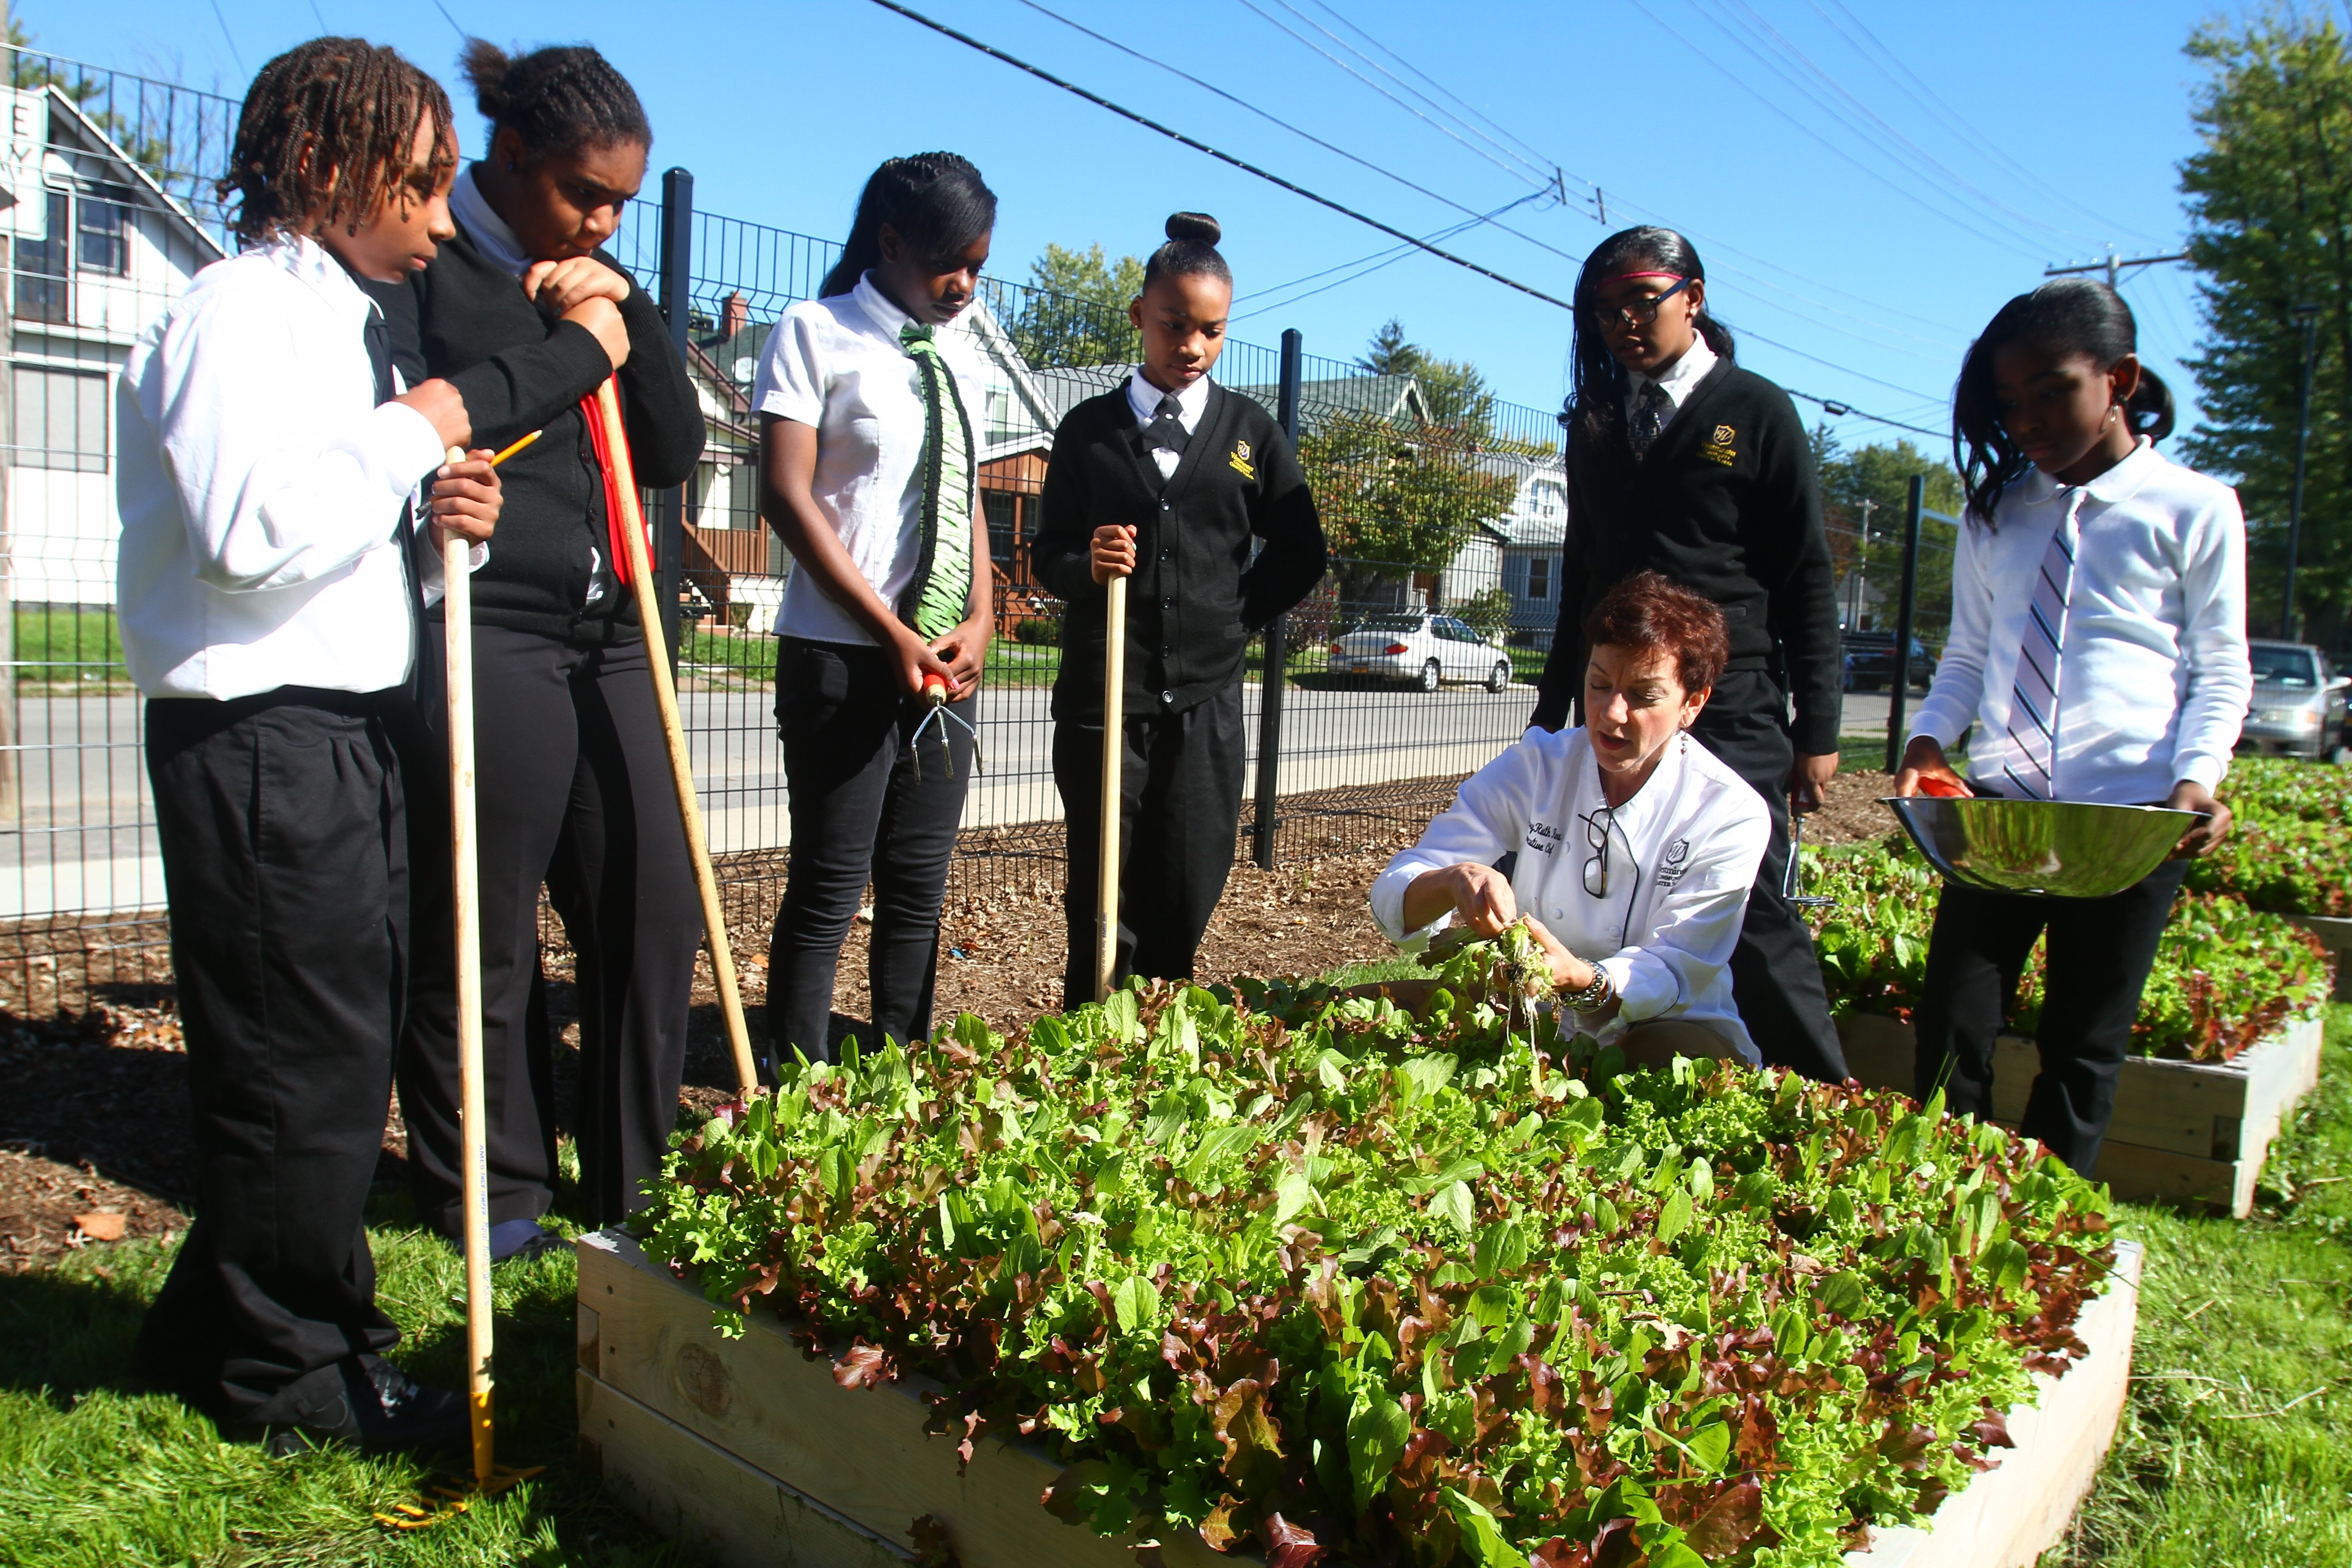 Chef MaryRuth Rera shows students how to select greens in the garden at Westminster Community Charter School. Rera routinely does classroom tastings at Westminster.